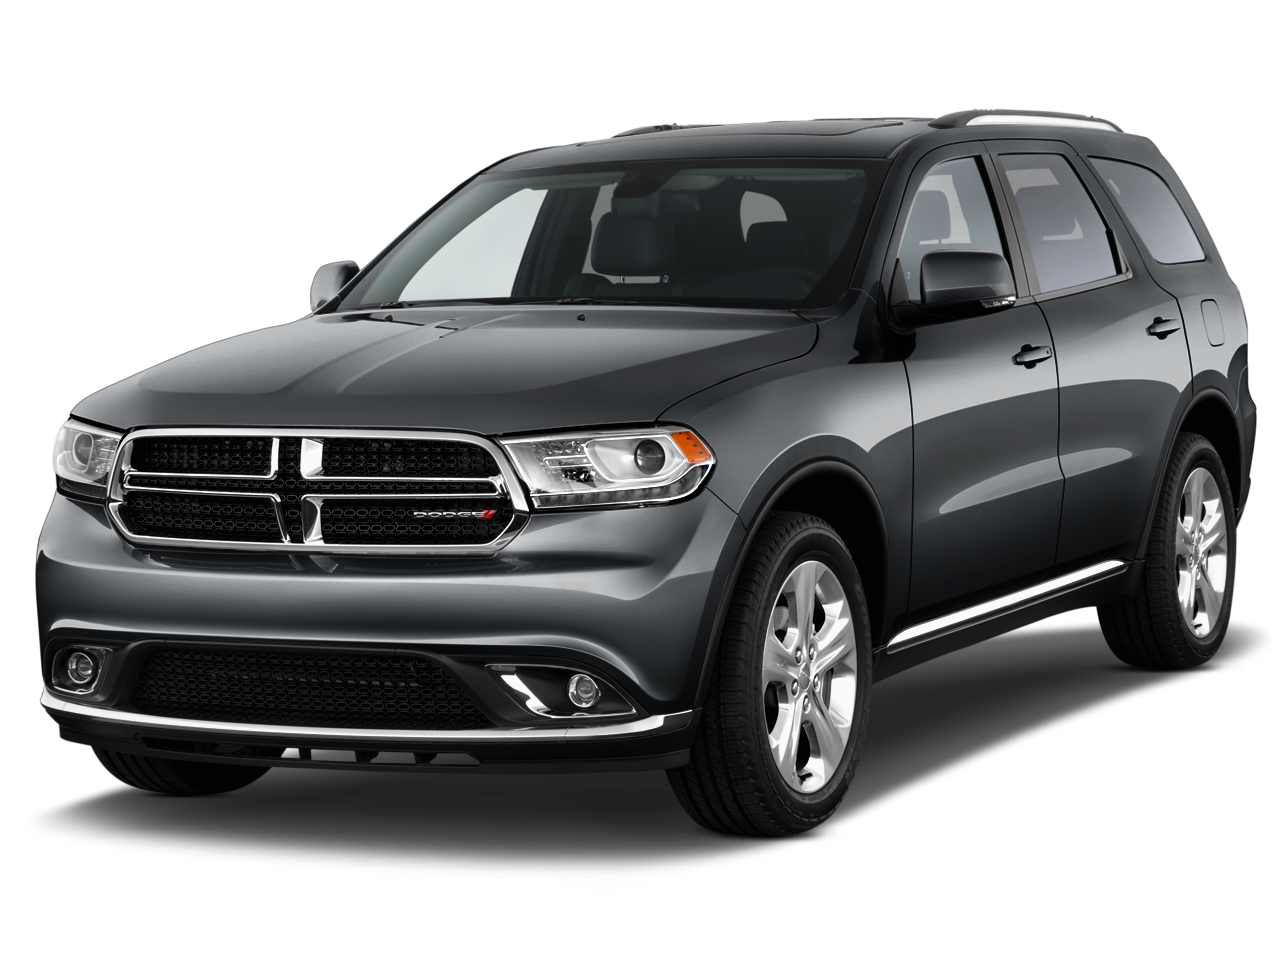 2014 Durango Availability Autos Post